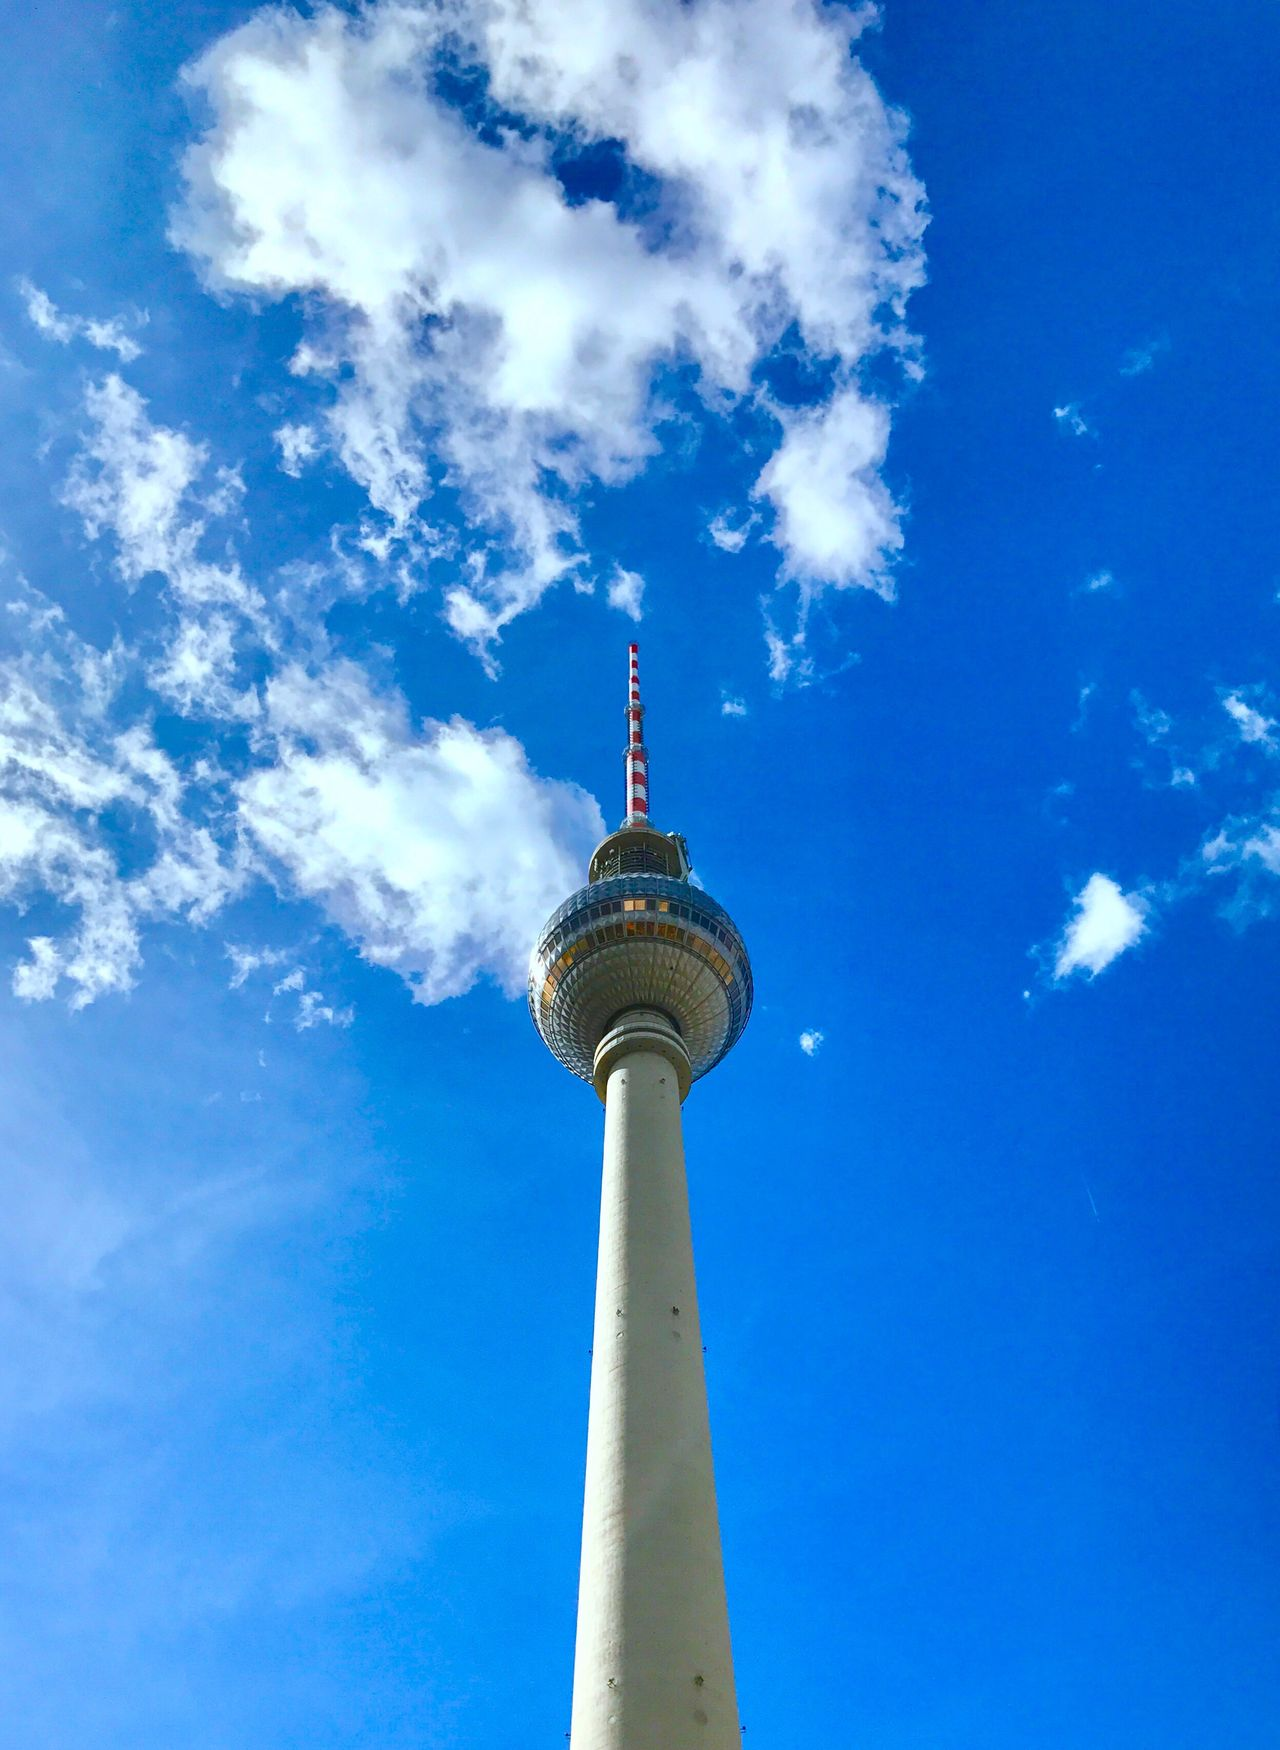 Tower Tvtower Tvtowerberlin Low Angle View Sky Blue Blue Sky Architecture Day Cloud - Sky Outdoors Urban Urbanphotography Urban Landscape Germanarchitecture